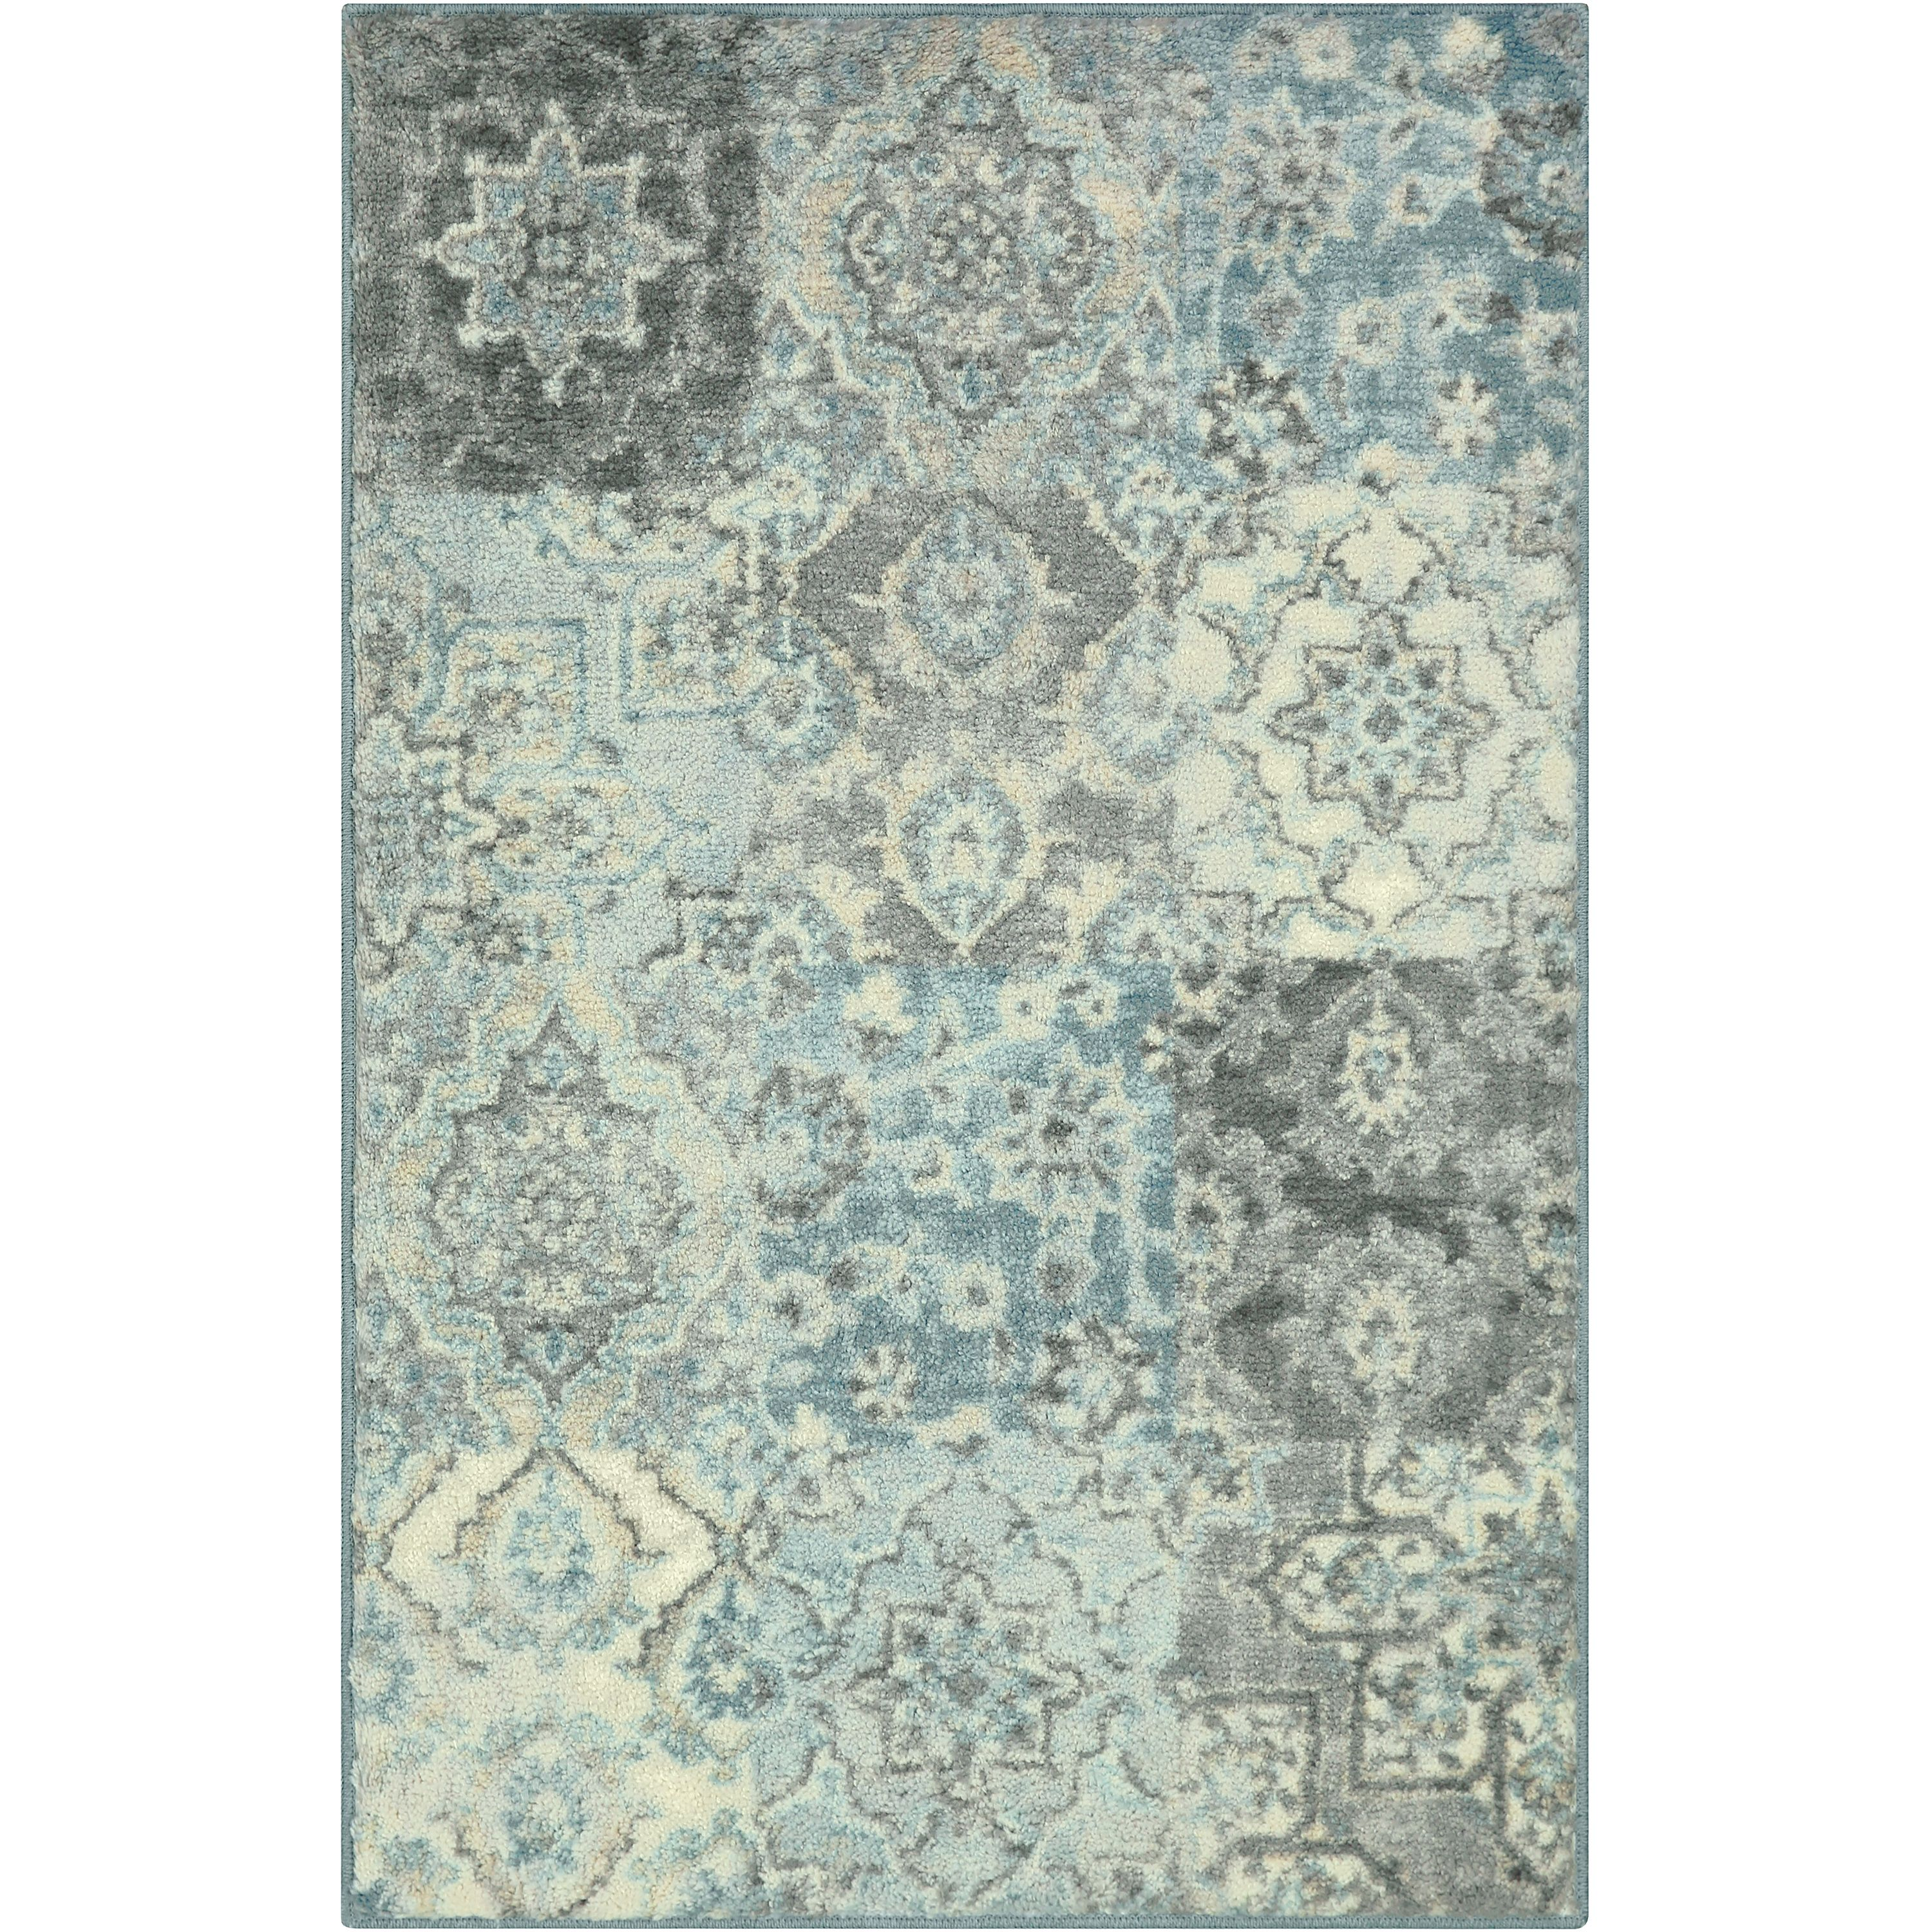 Home Area Rugs Rugs Teal Area Rug